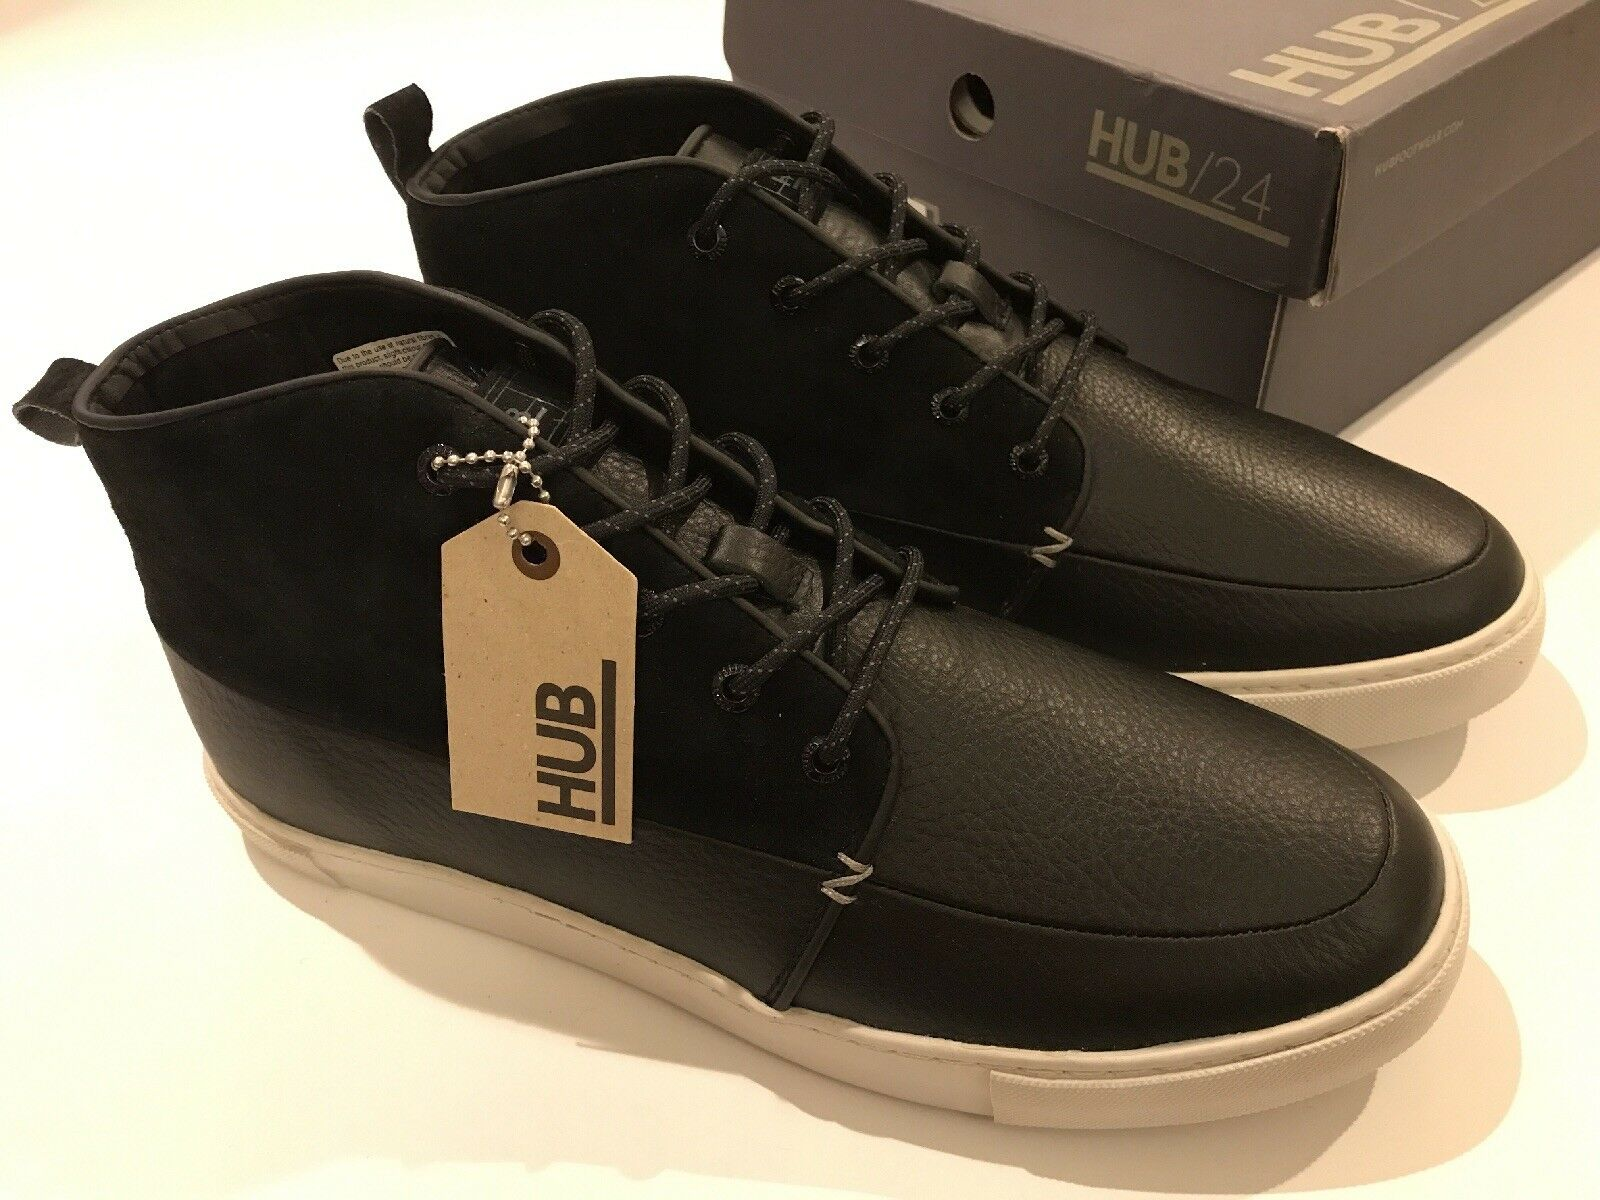 HUB Camden L37 Men's High Sneakers Schuhes 10, Trainers UK Größe 10, Schuhes EU 44, US 11 New c7632c